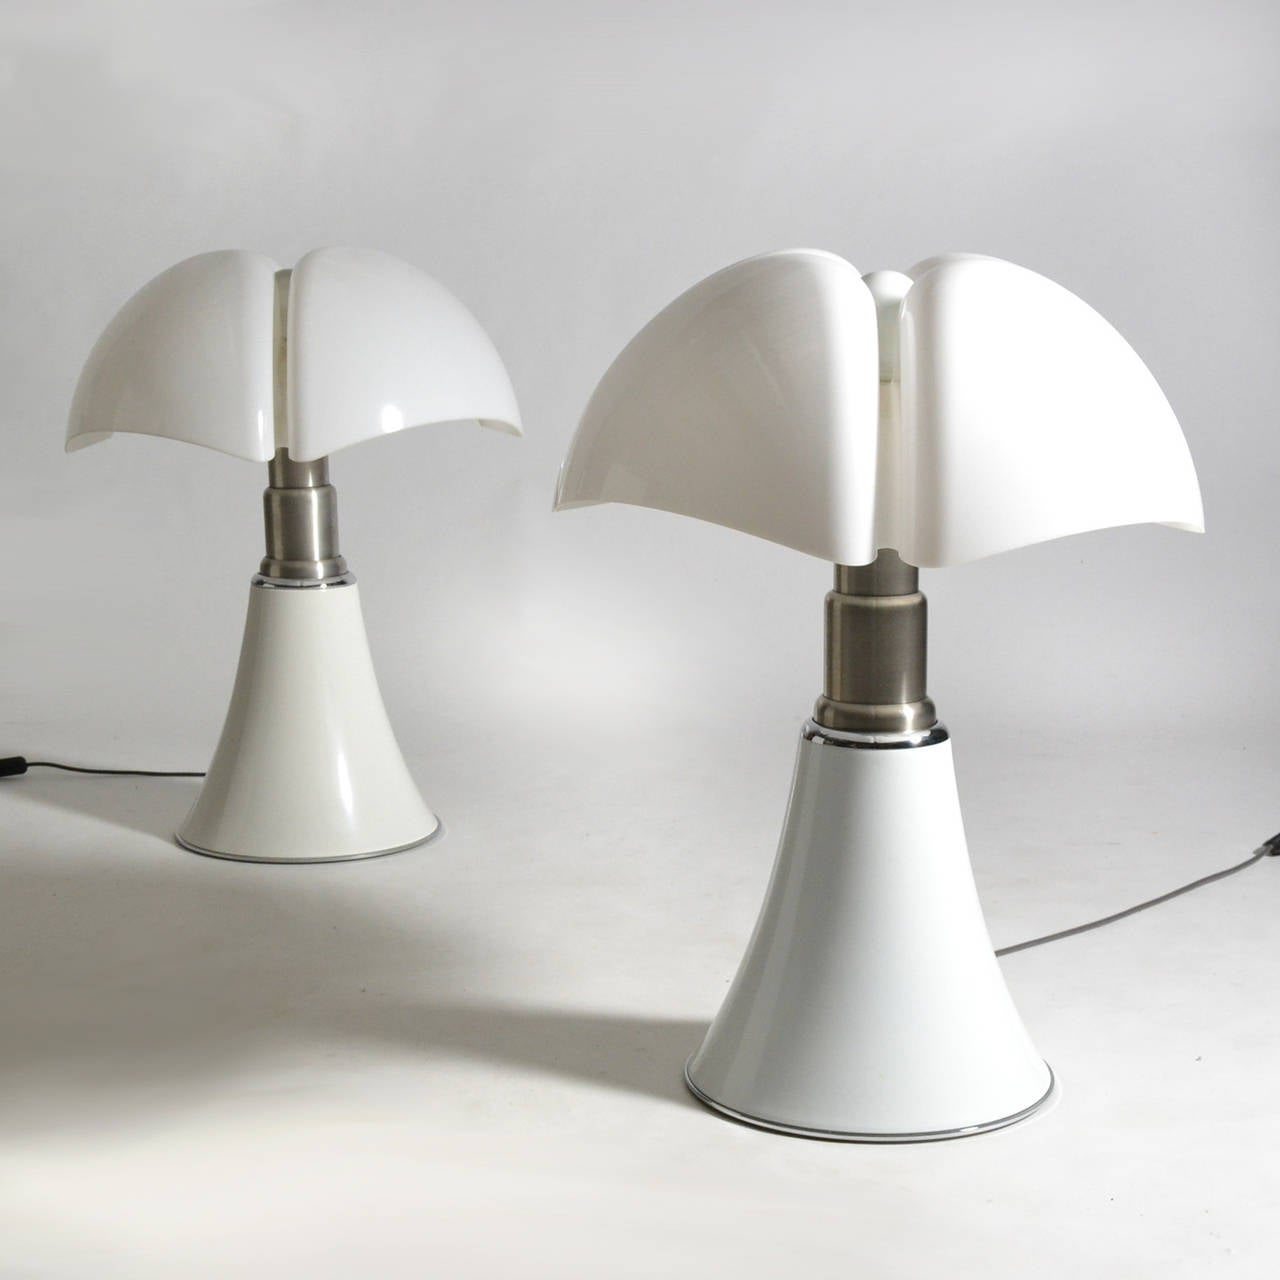 Pair of Gae Aulenti Pipistrello Table Lamps In Good Condition For Sale In Highland, IN